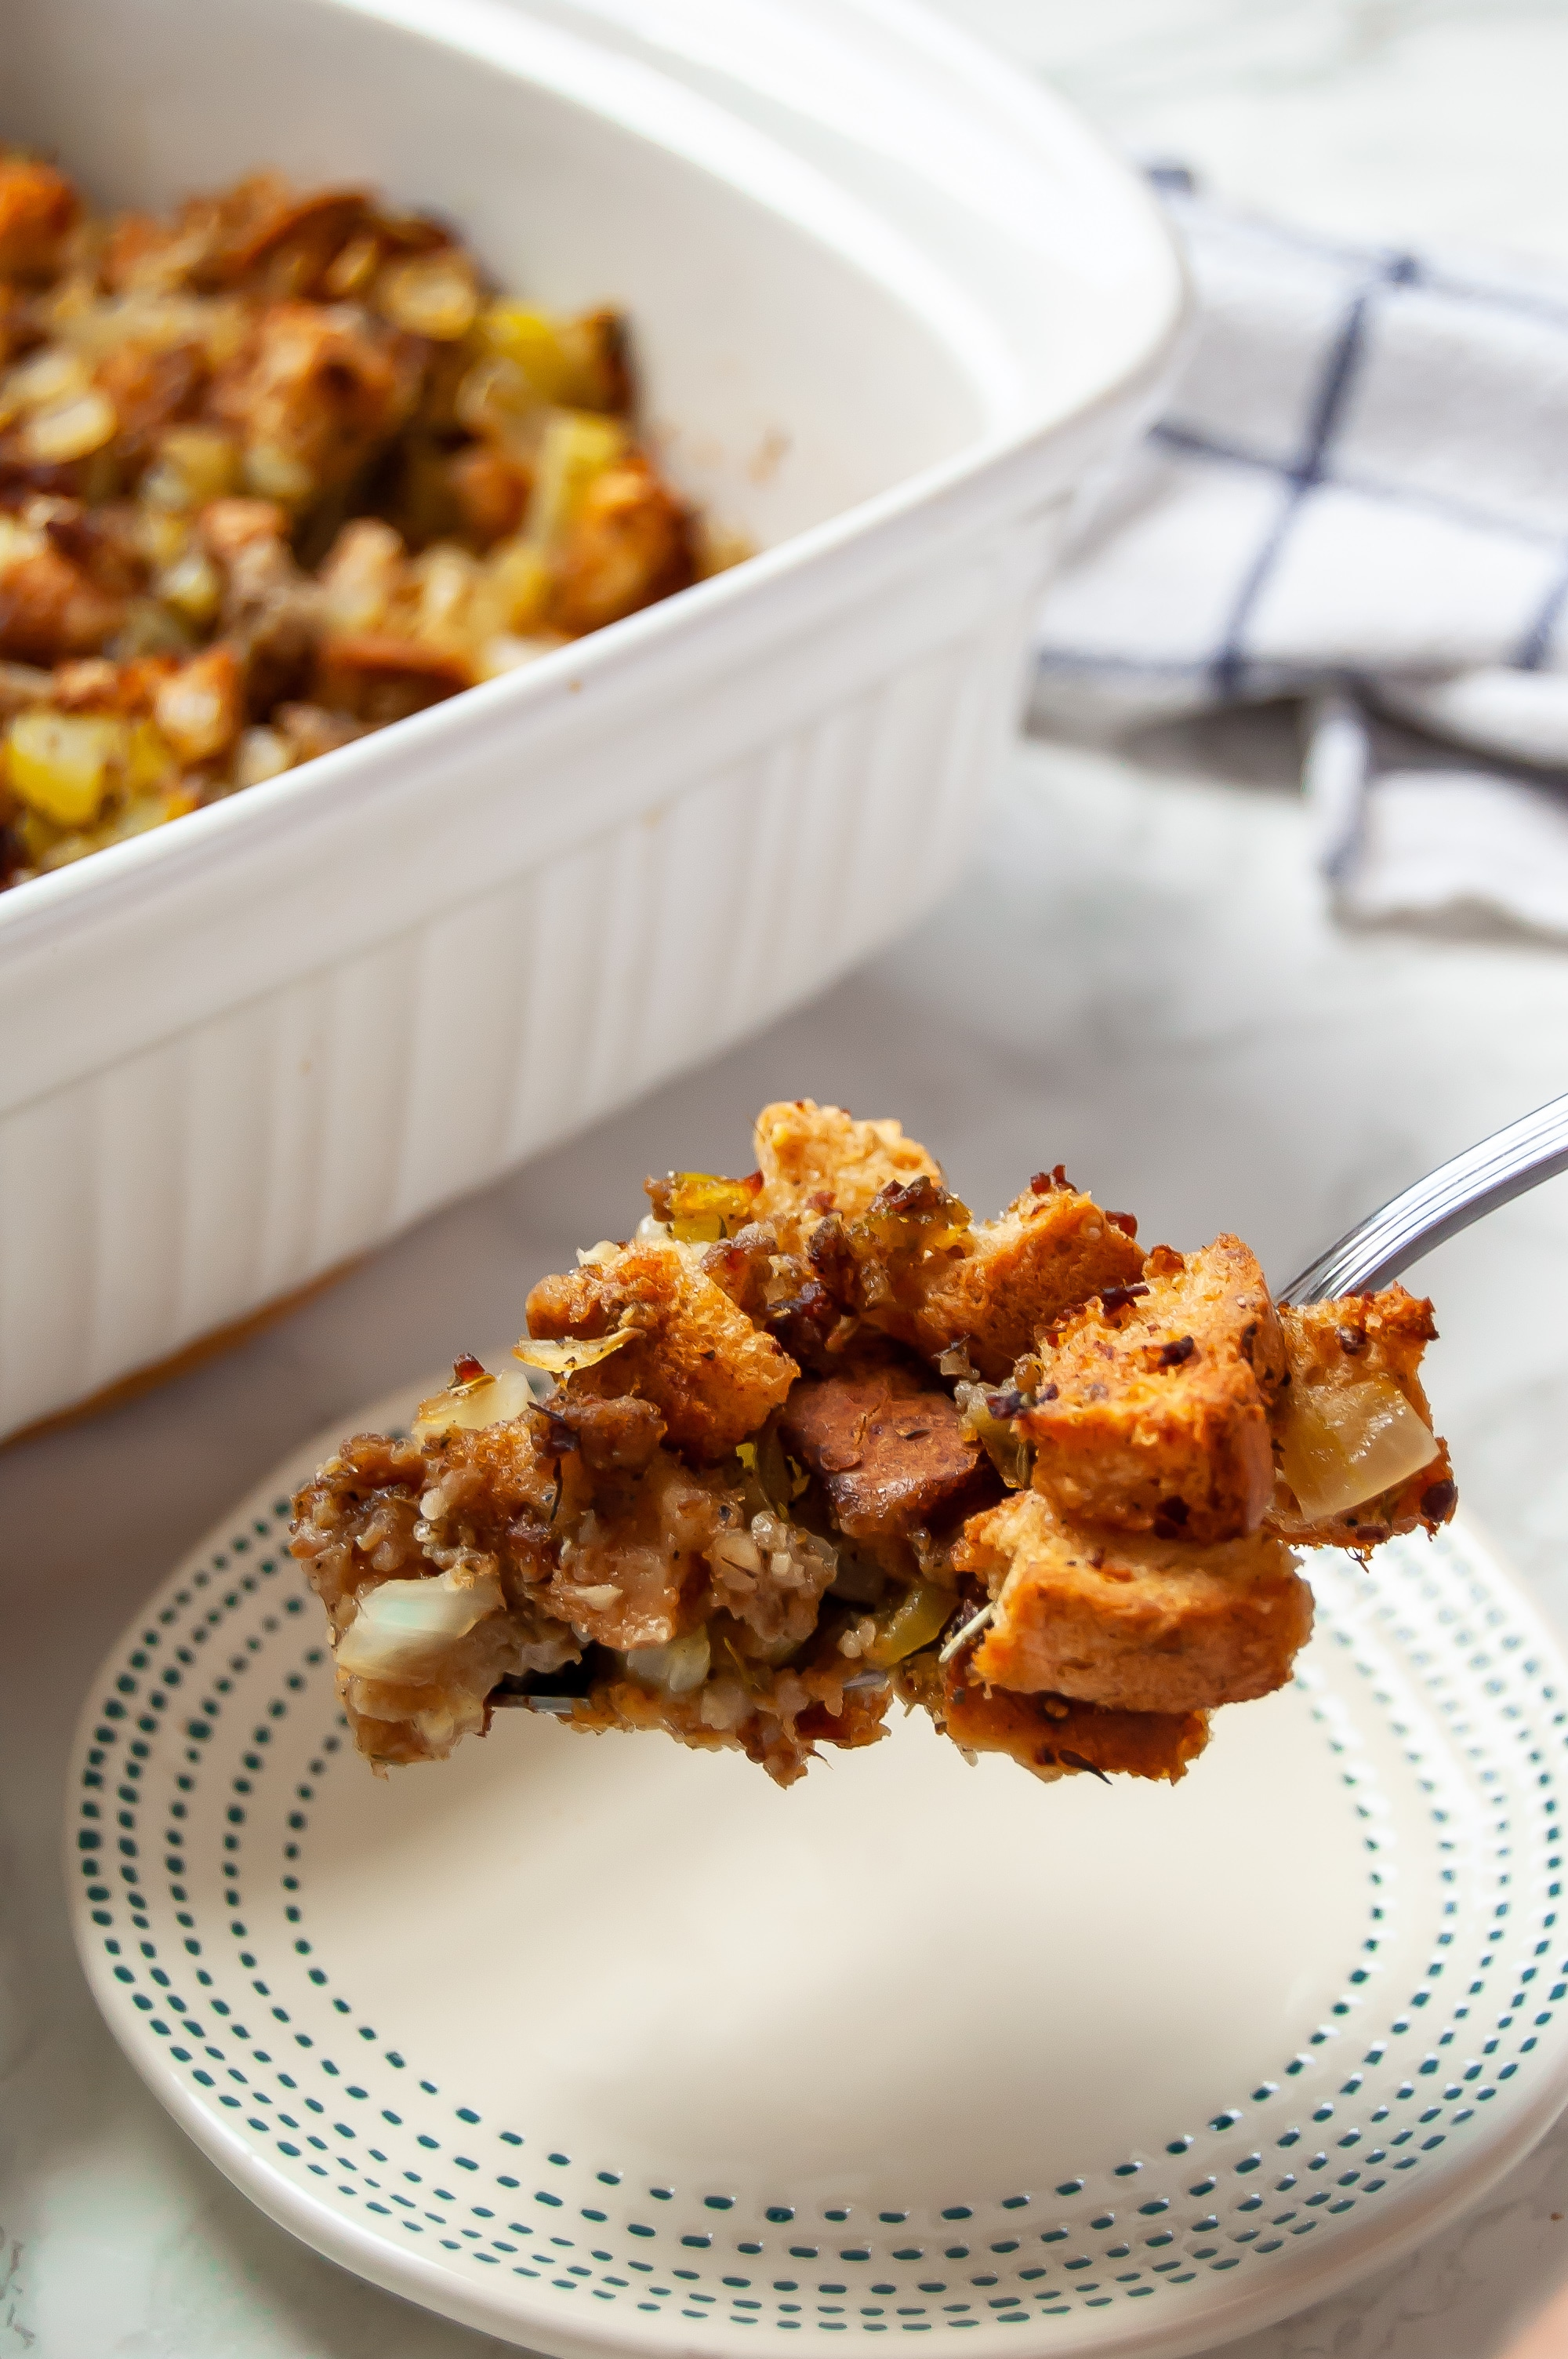 This gluten-free stuffing recipe with sausage is a classic, simple holiday side dish - the perfect Thanksgiving stuffing!